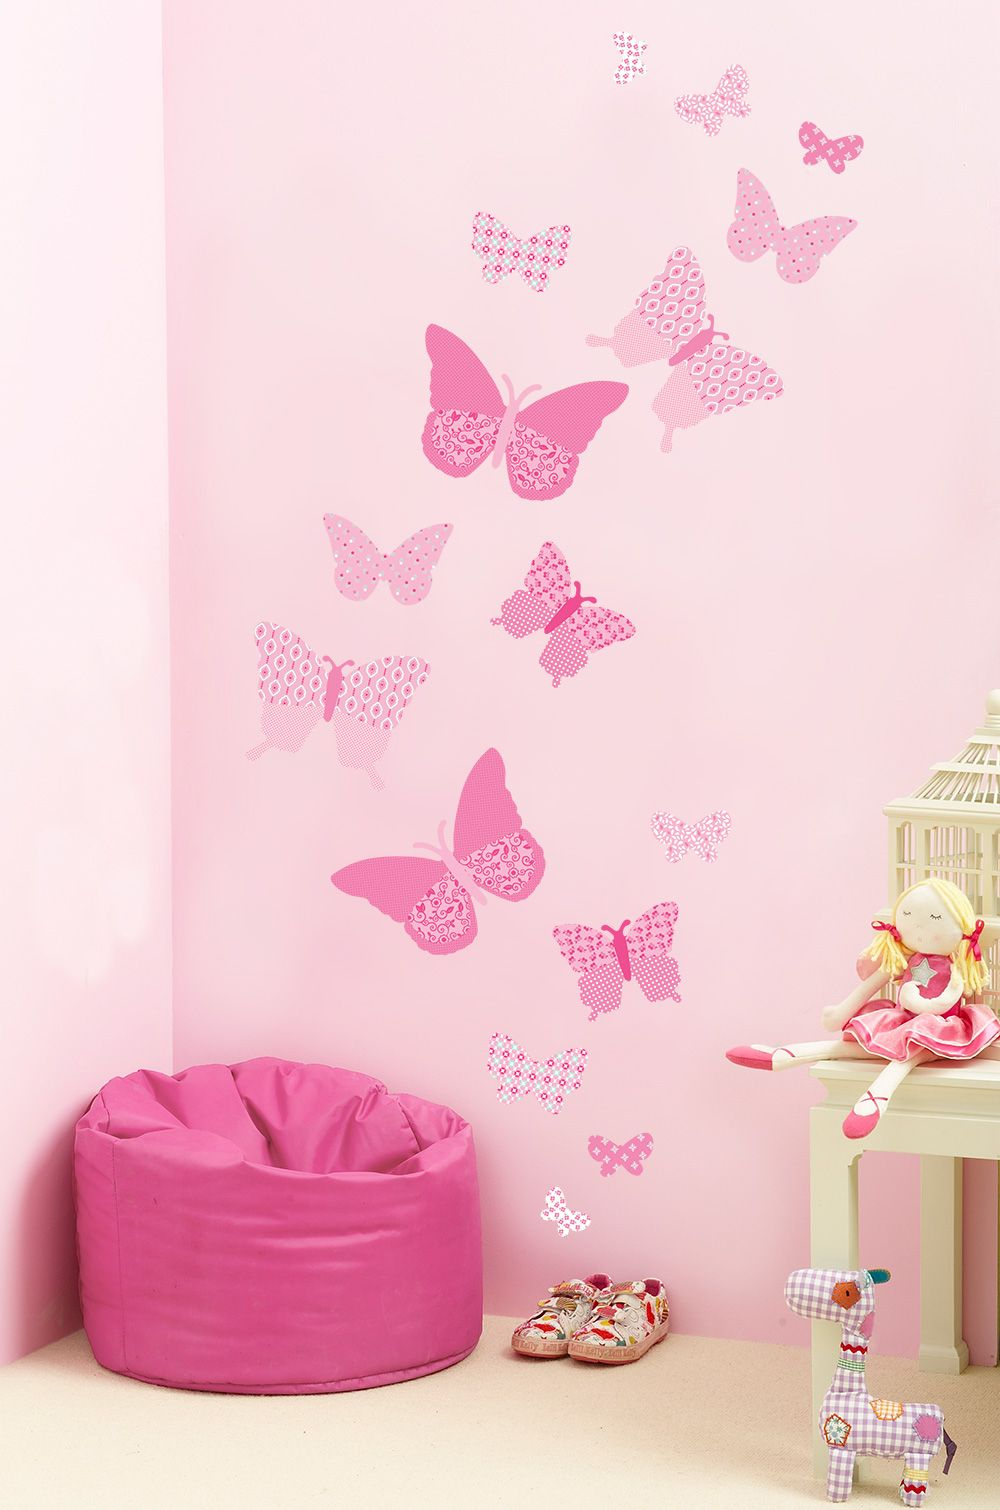 Decorate A Little Girlu0027s Bedroom, Nursery Or Playroom With These Butterflies  Wall Decals Filled With Vintage Patterns In Shades Of Pink. Part 8